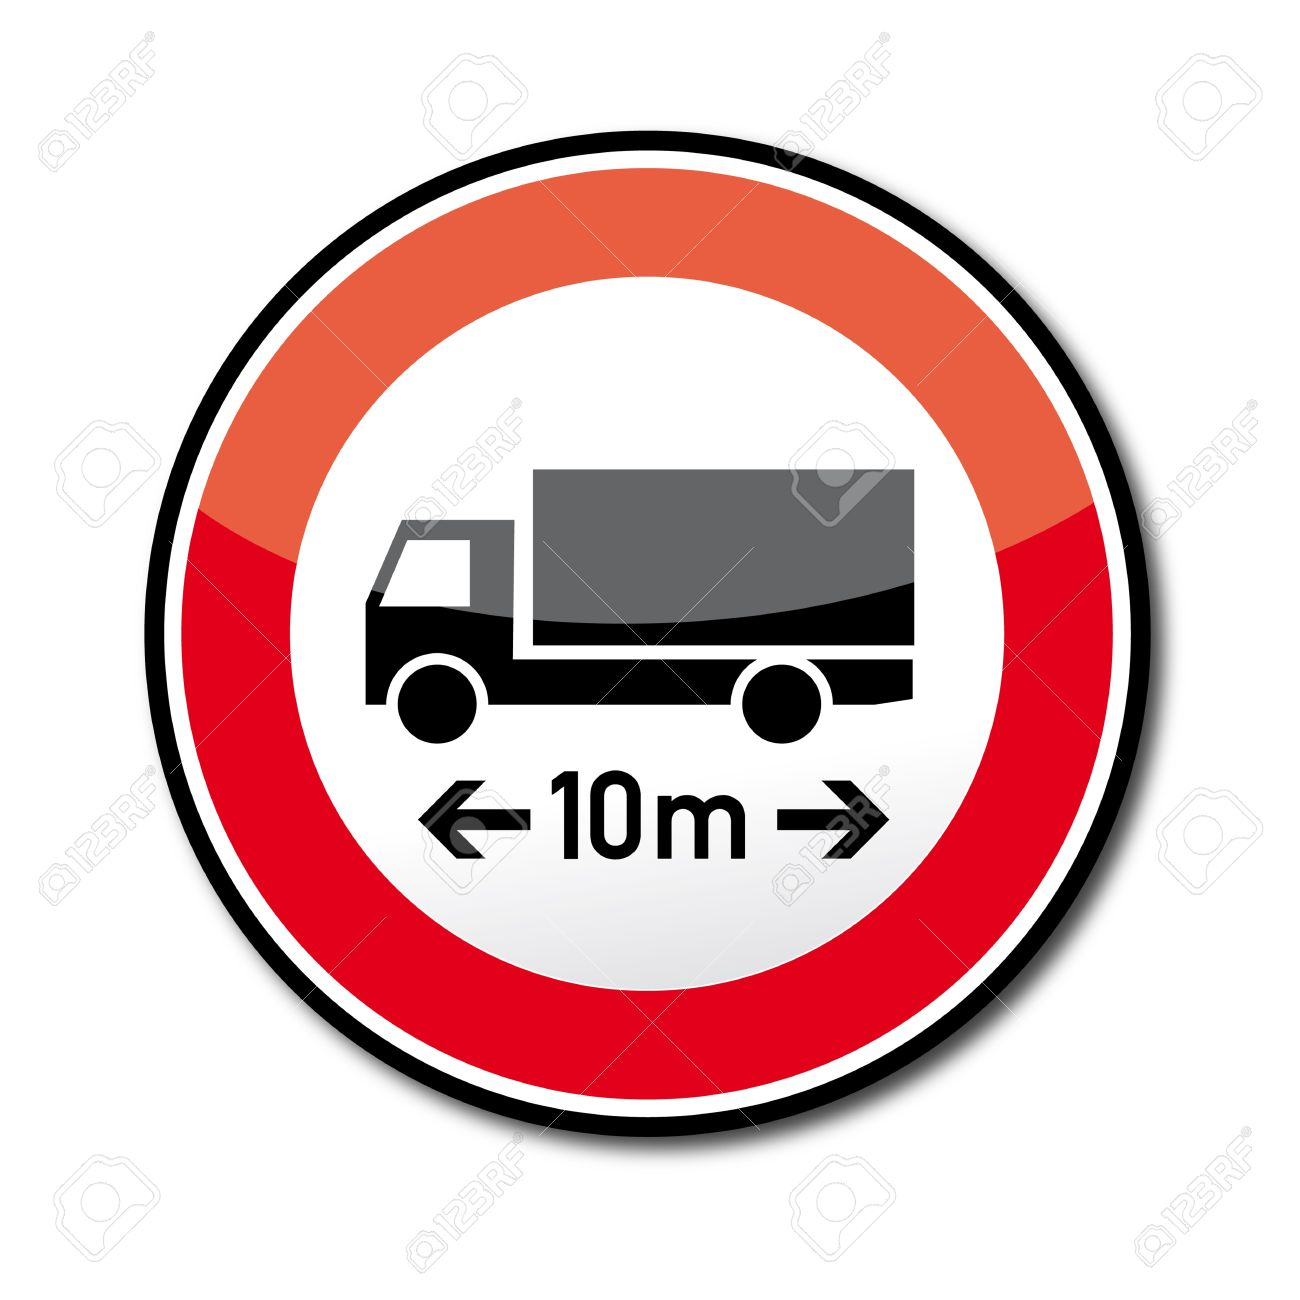 Road Sign Ban On Cars And Trains Over The Specified Length.